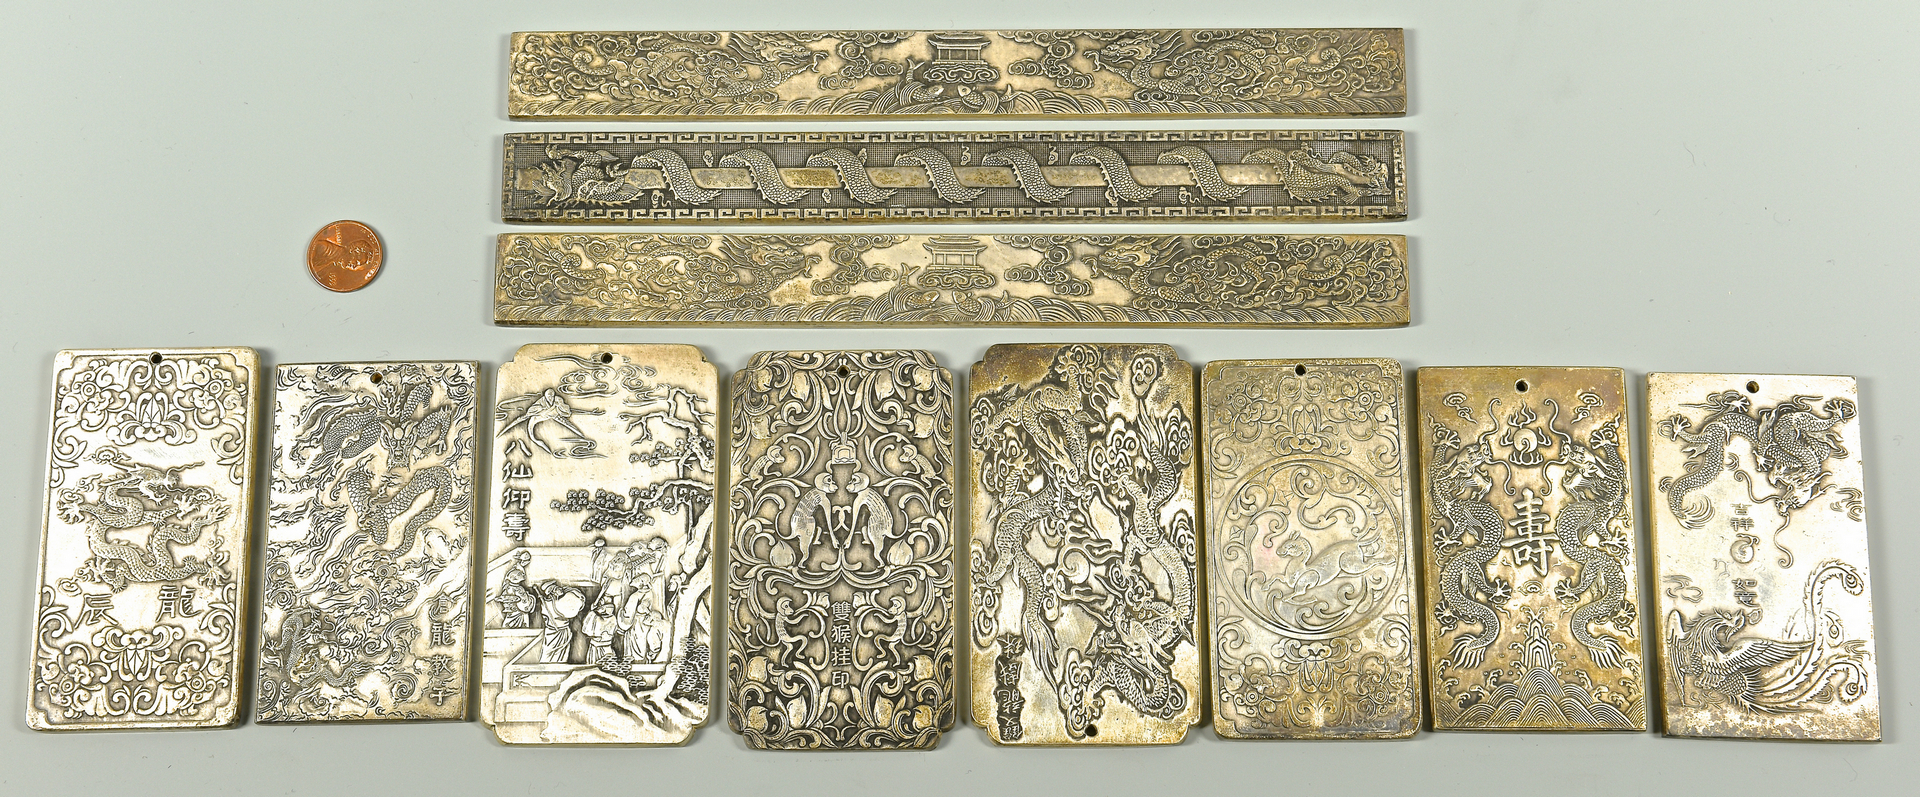 Lot 37 Chinese Silver Plaques Or Scroll Weights